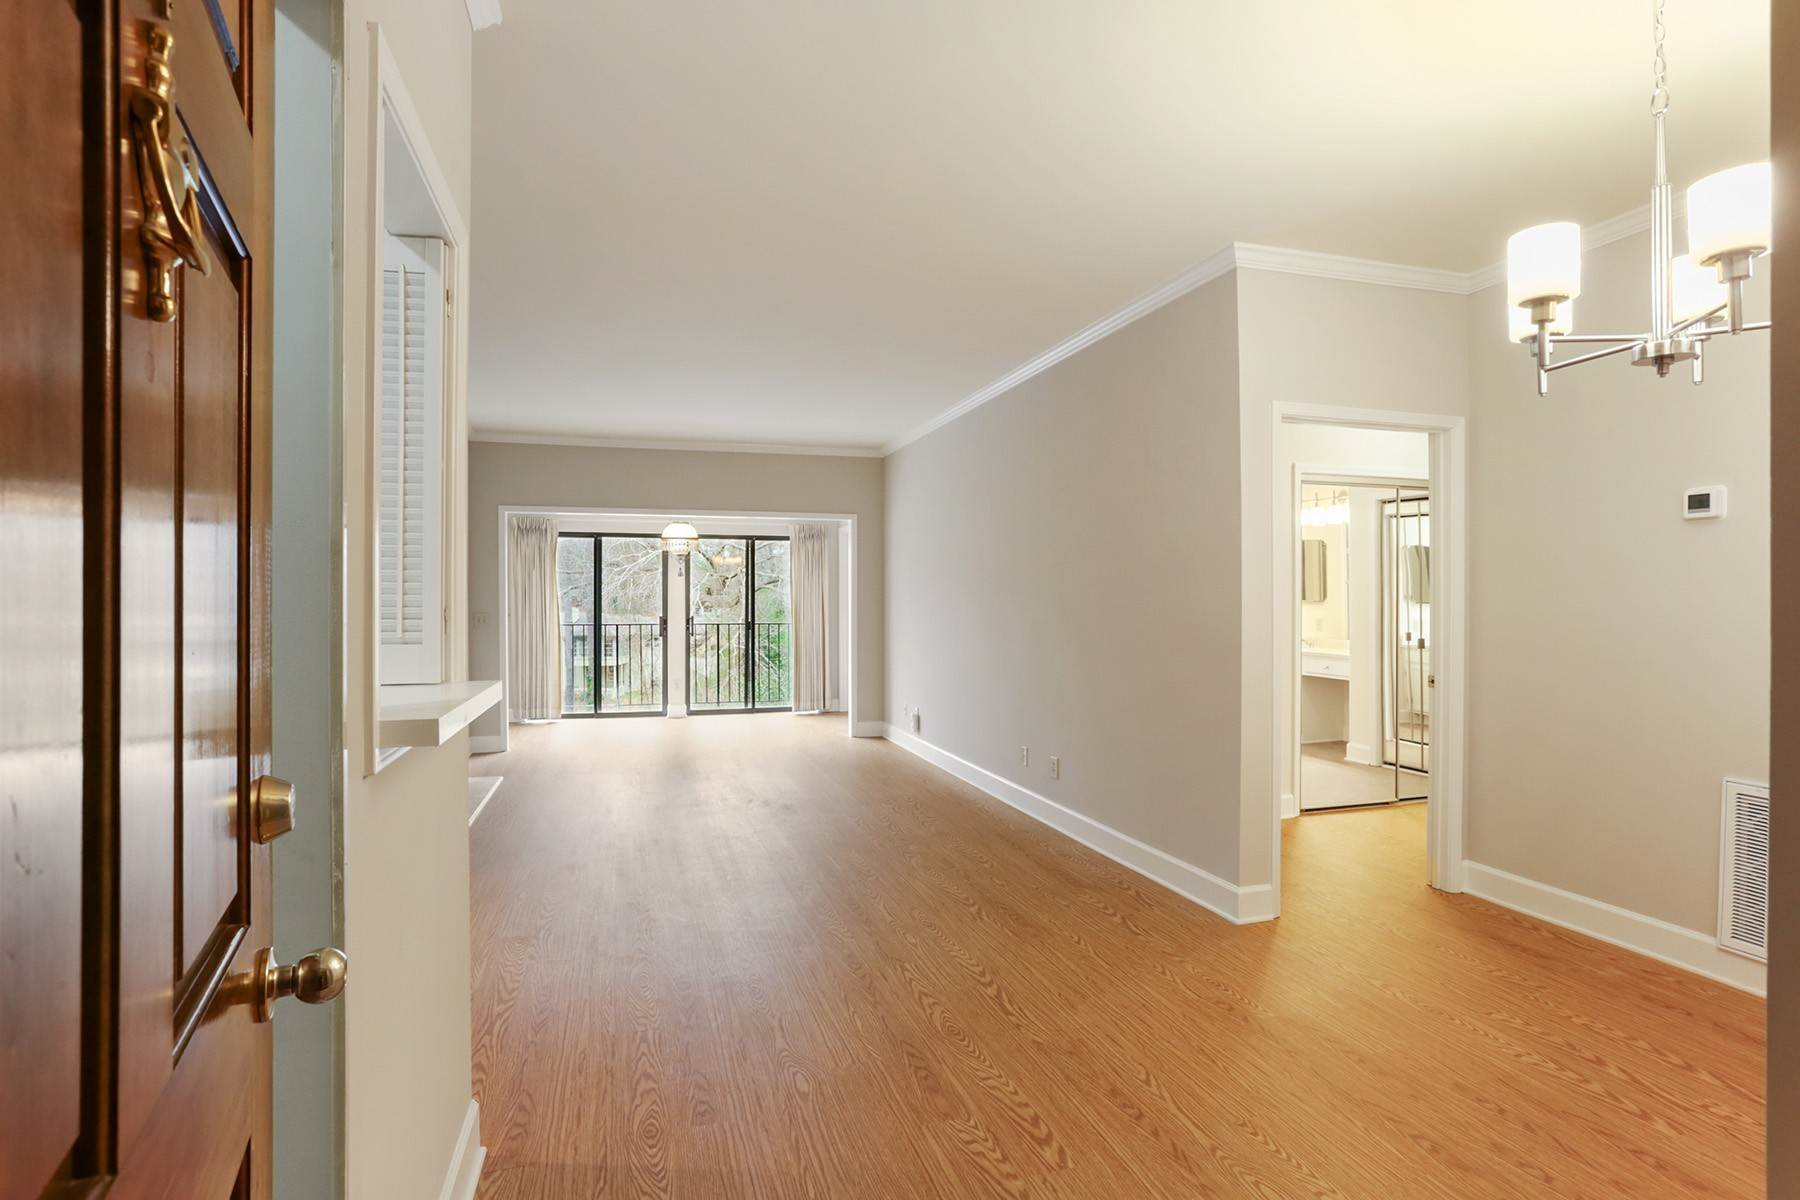 Condominiums for Sale at Fantastic Opportunity on Light-Drenched and Spacious Two-Bedroom 3071 Lenox Road, No. 31 Atlanta, Georgia 30324 United States